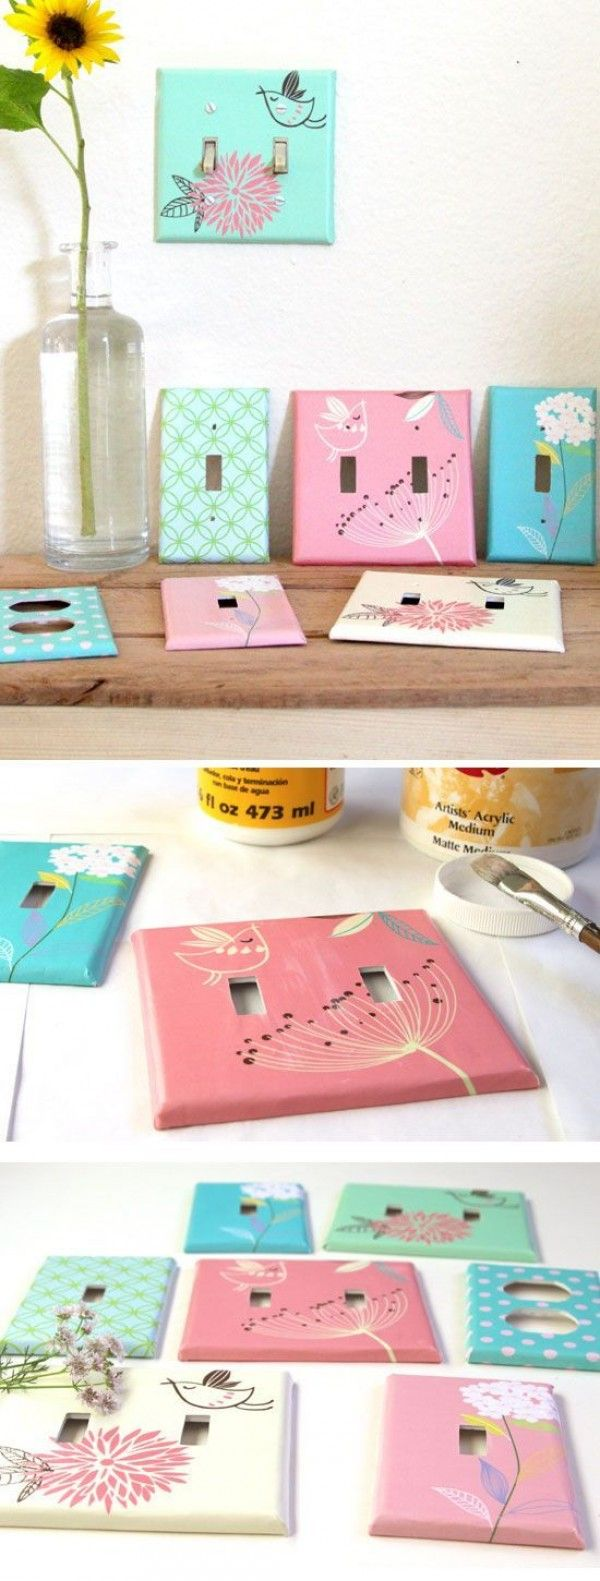 Check out the tutorial: #DIY designer light switch plate #crafts #homedecor